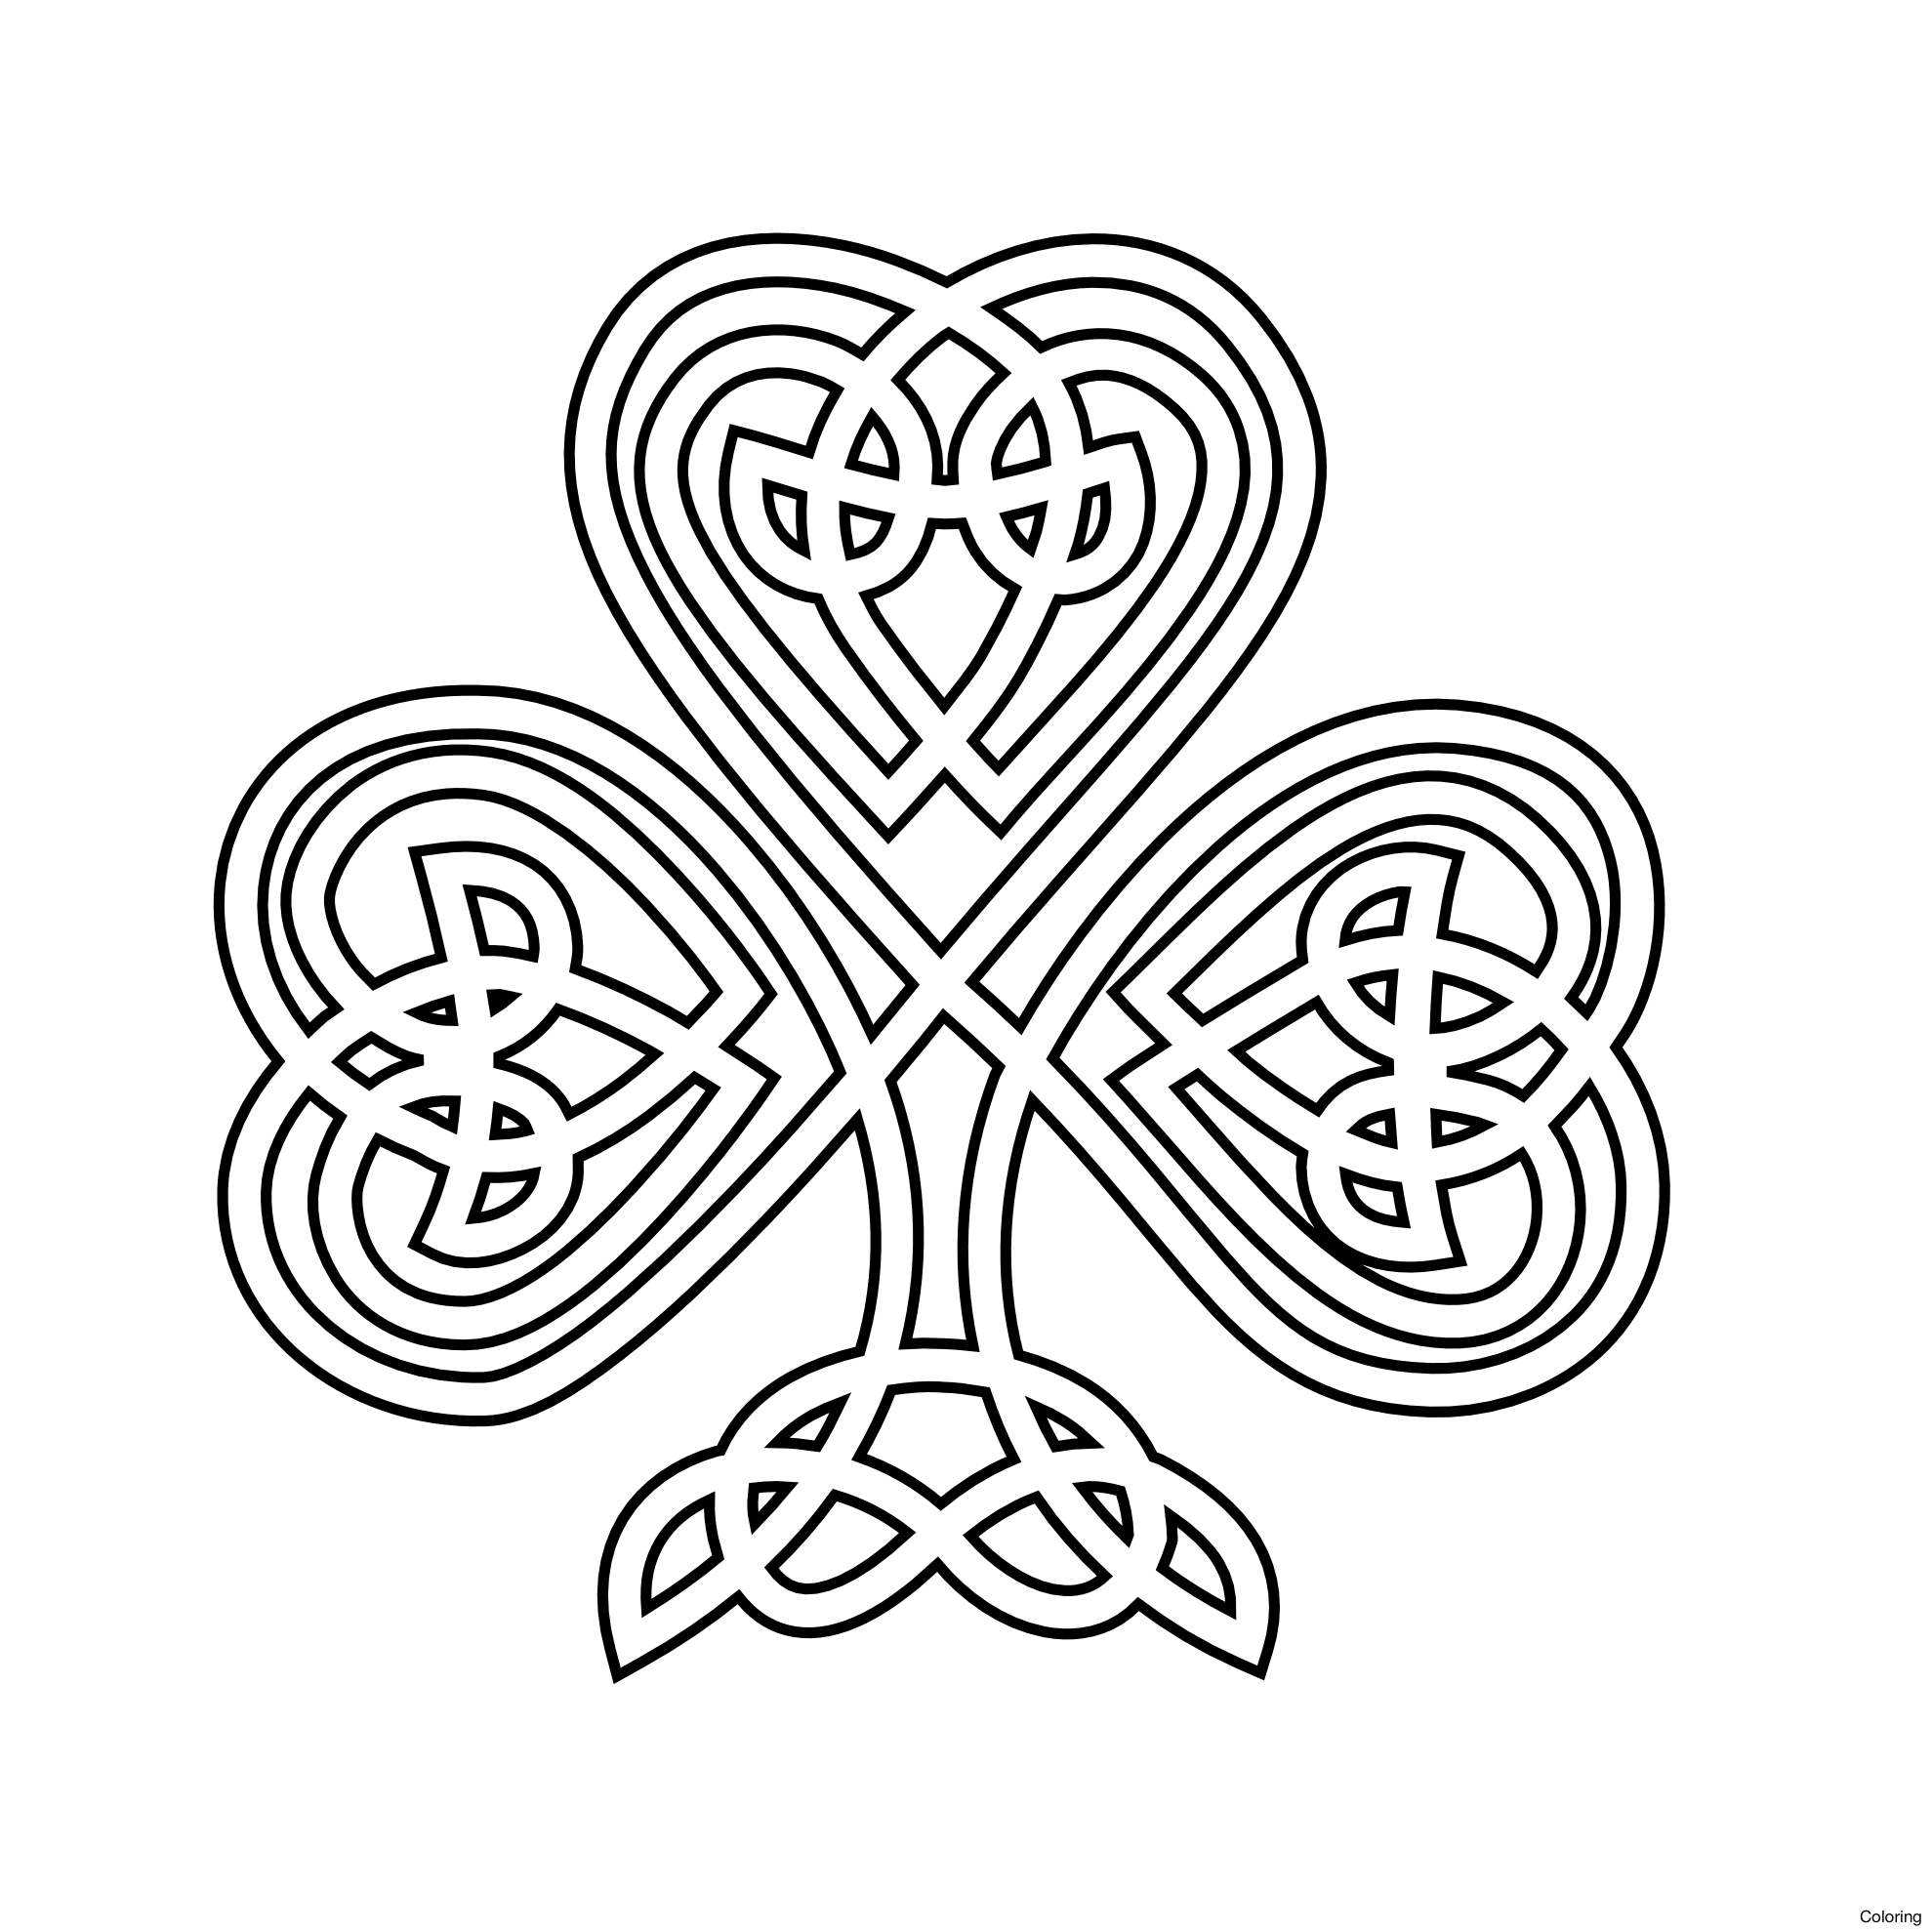 png transparent Celtic cross clipart black and white. Knot gaelic free on